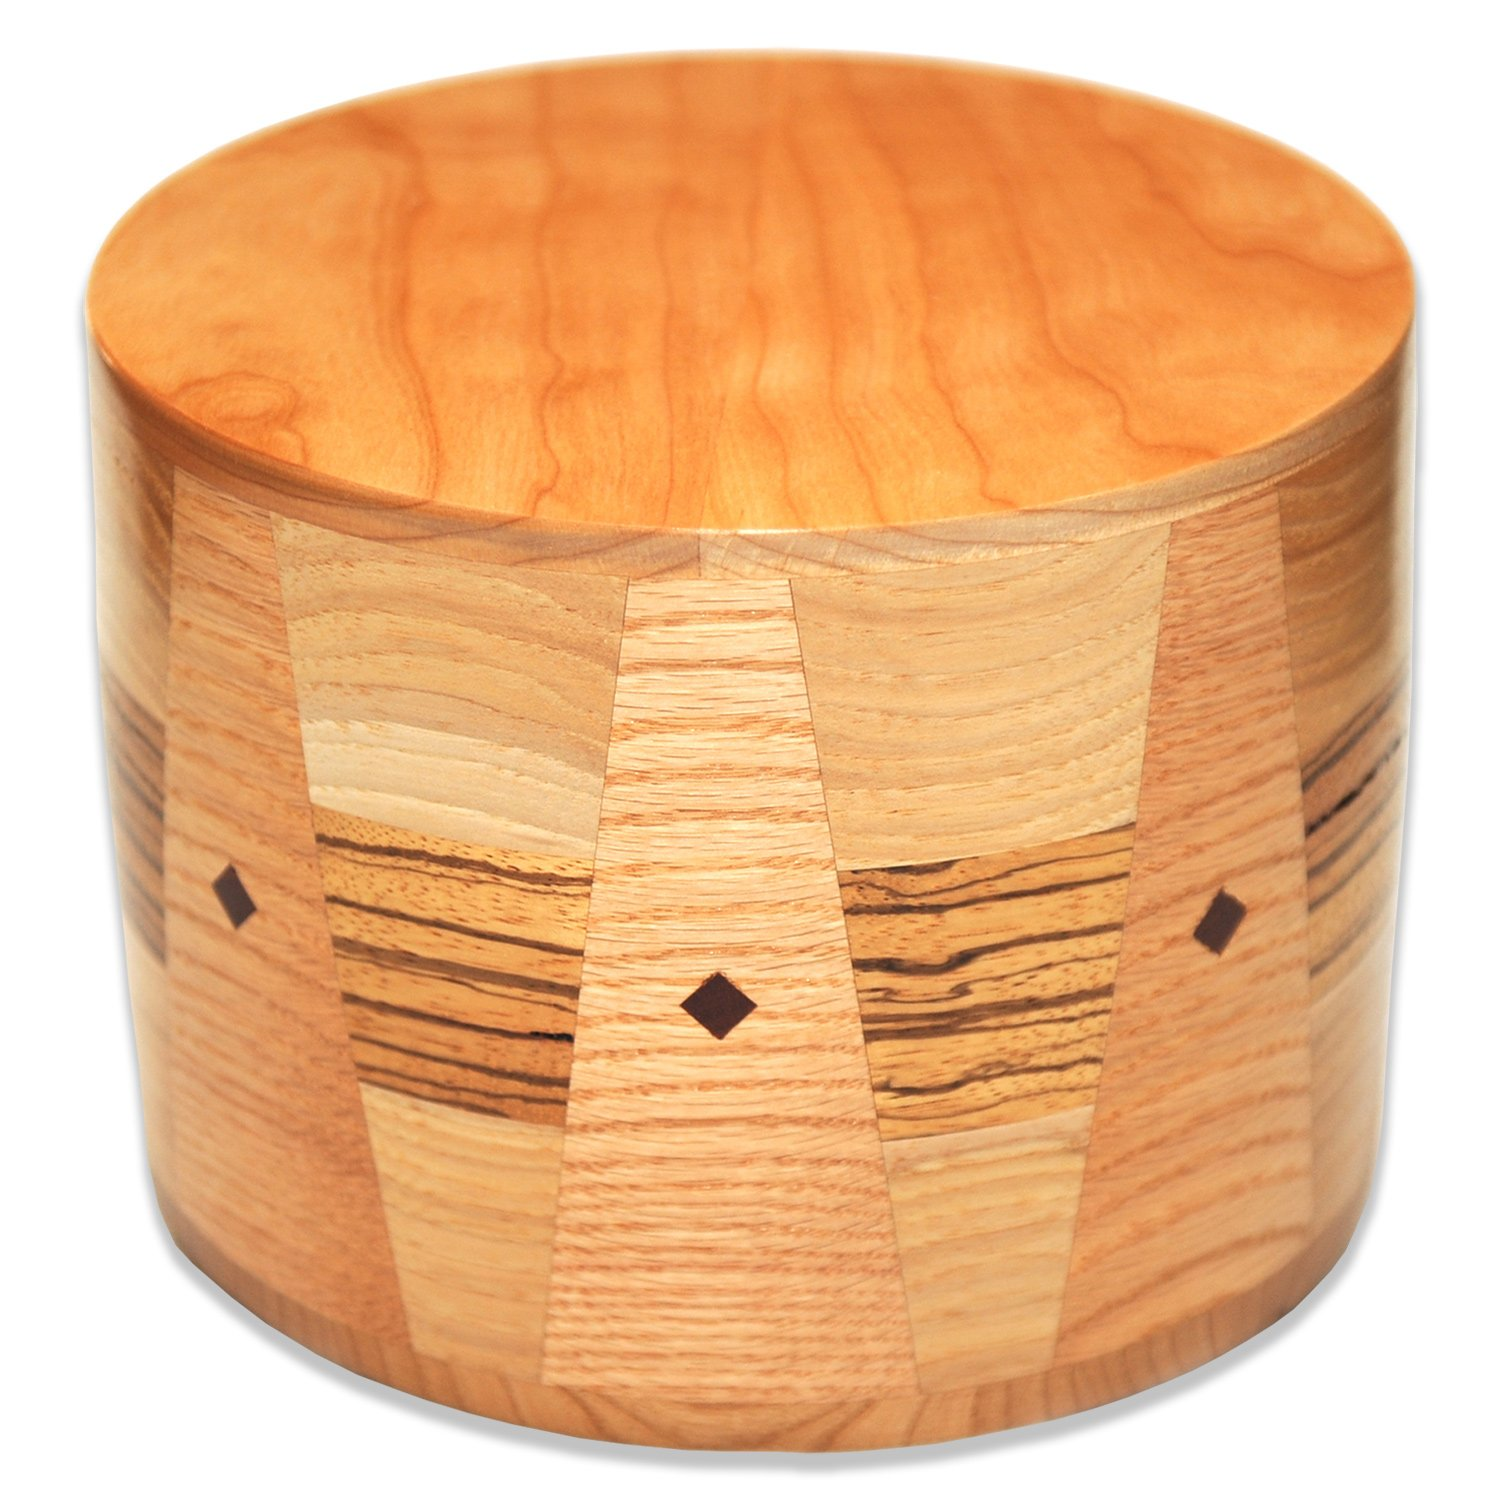 Handmade Round Wooden Cremation Urn in Maple Zebrawood and Oak Wood with Inlays